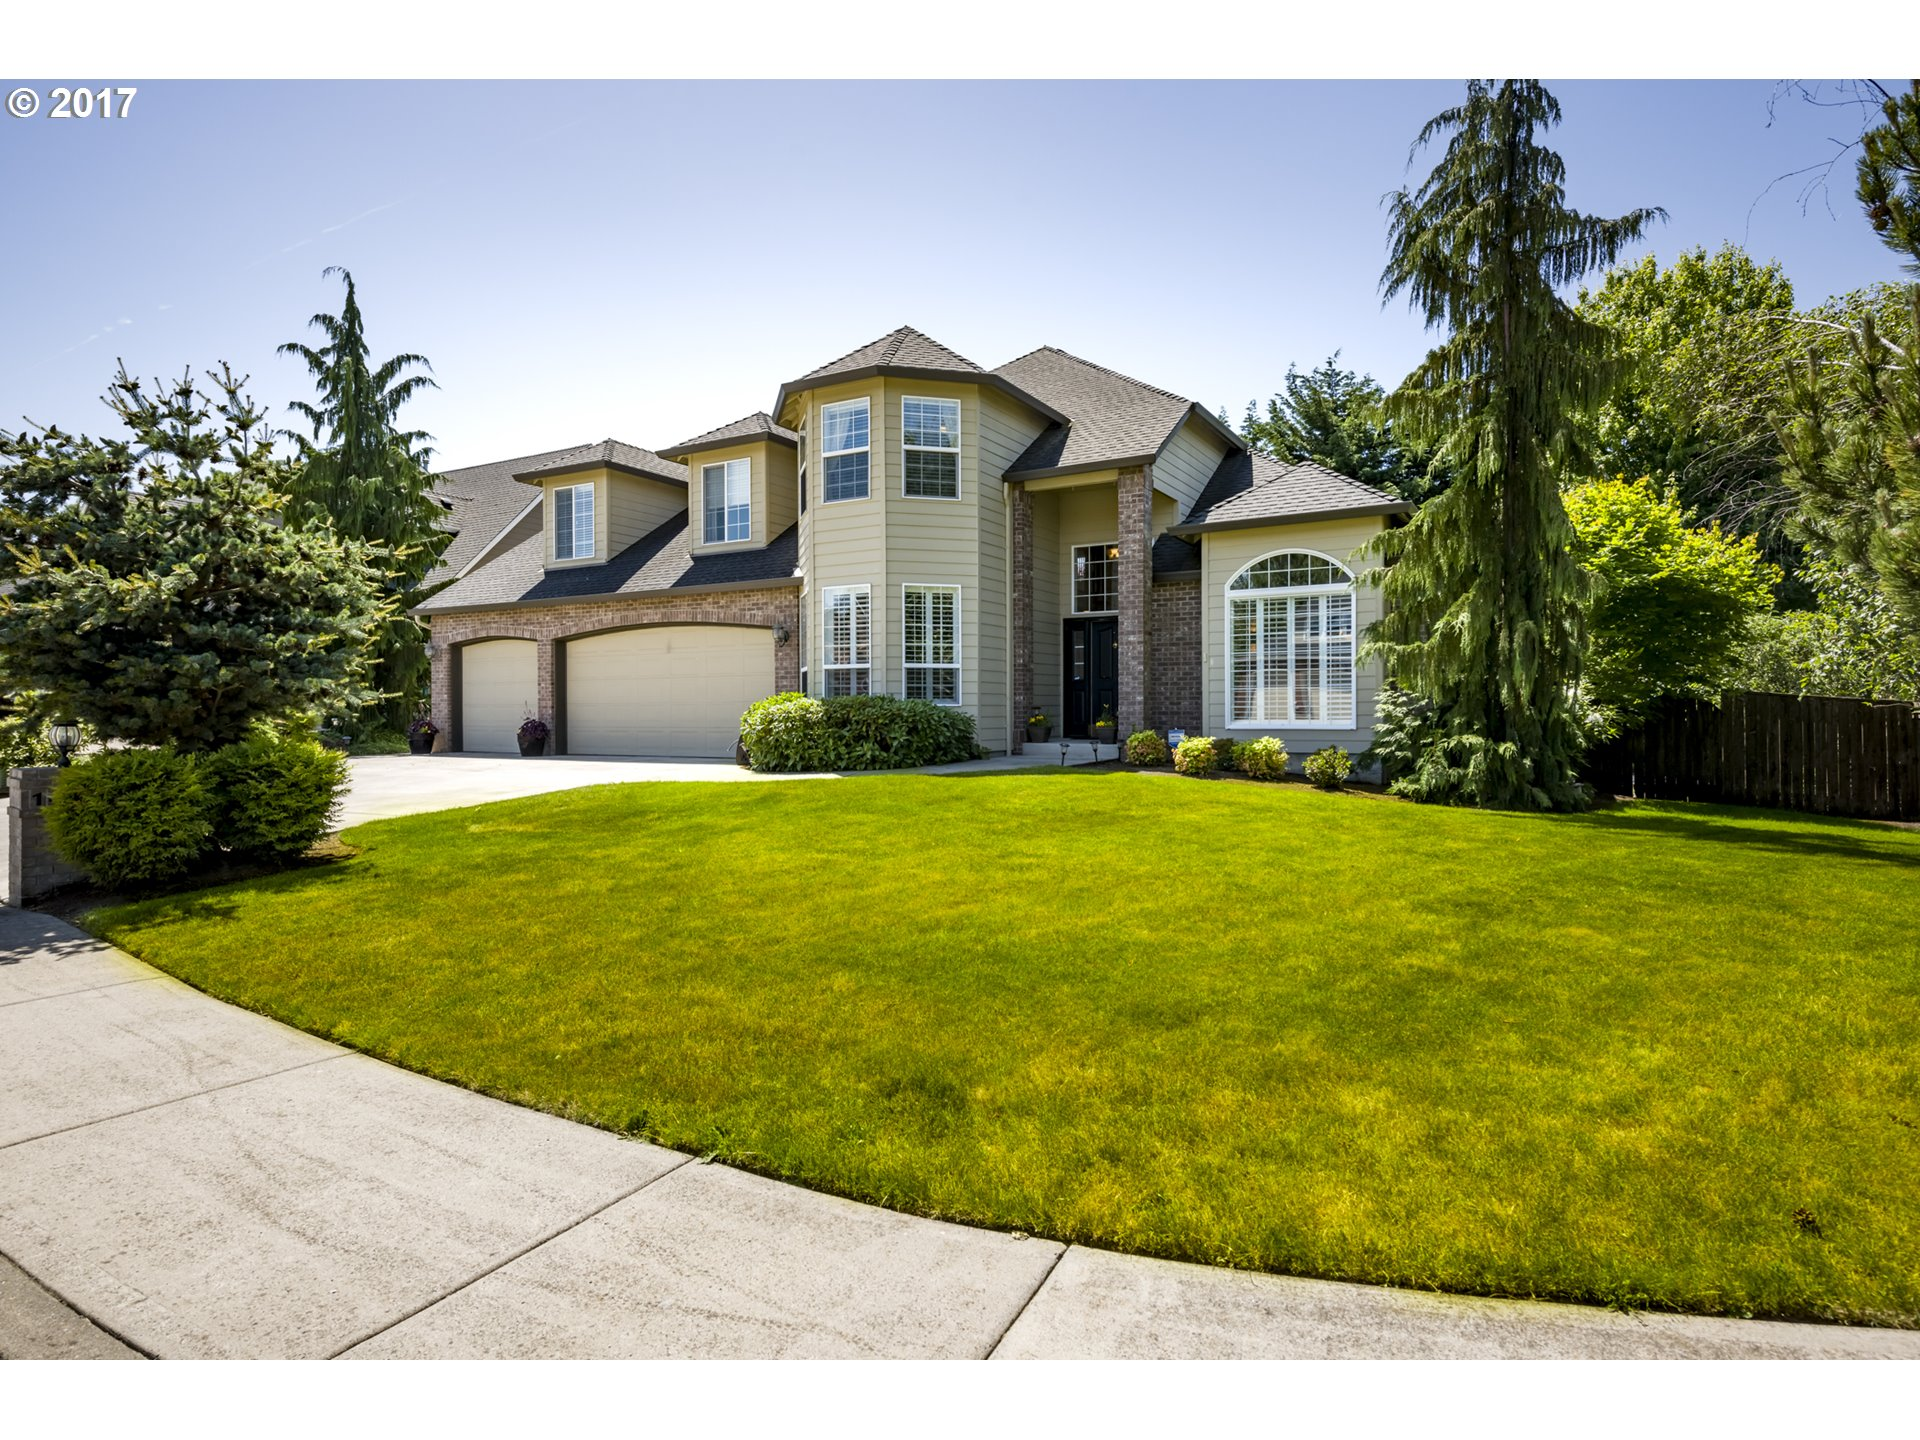 14008 NW 53RD AVE, Vancouver, WA 98685